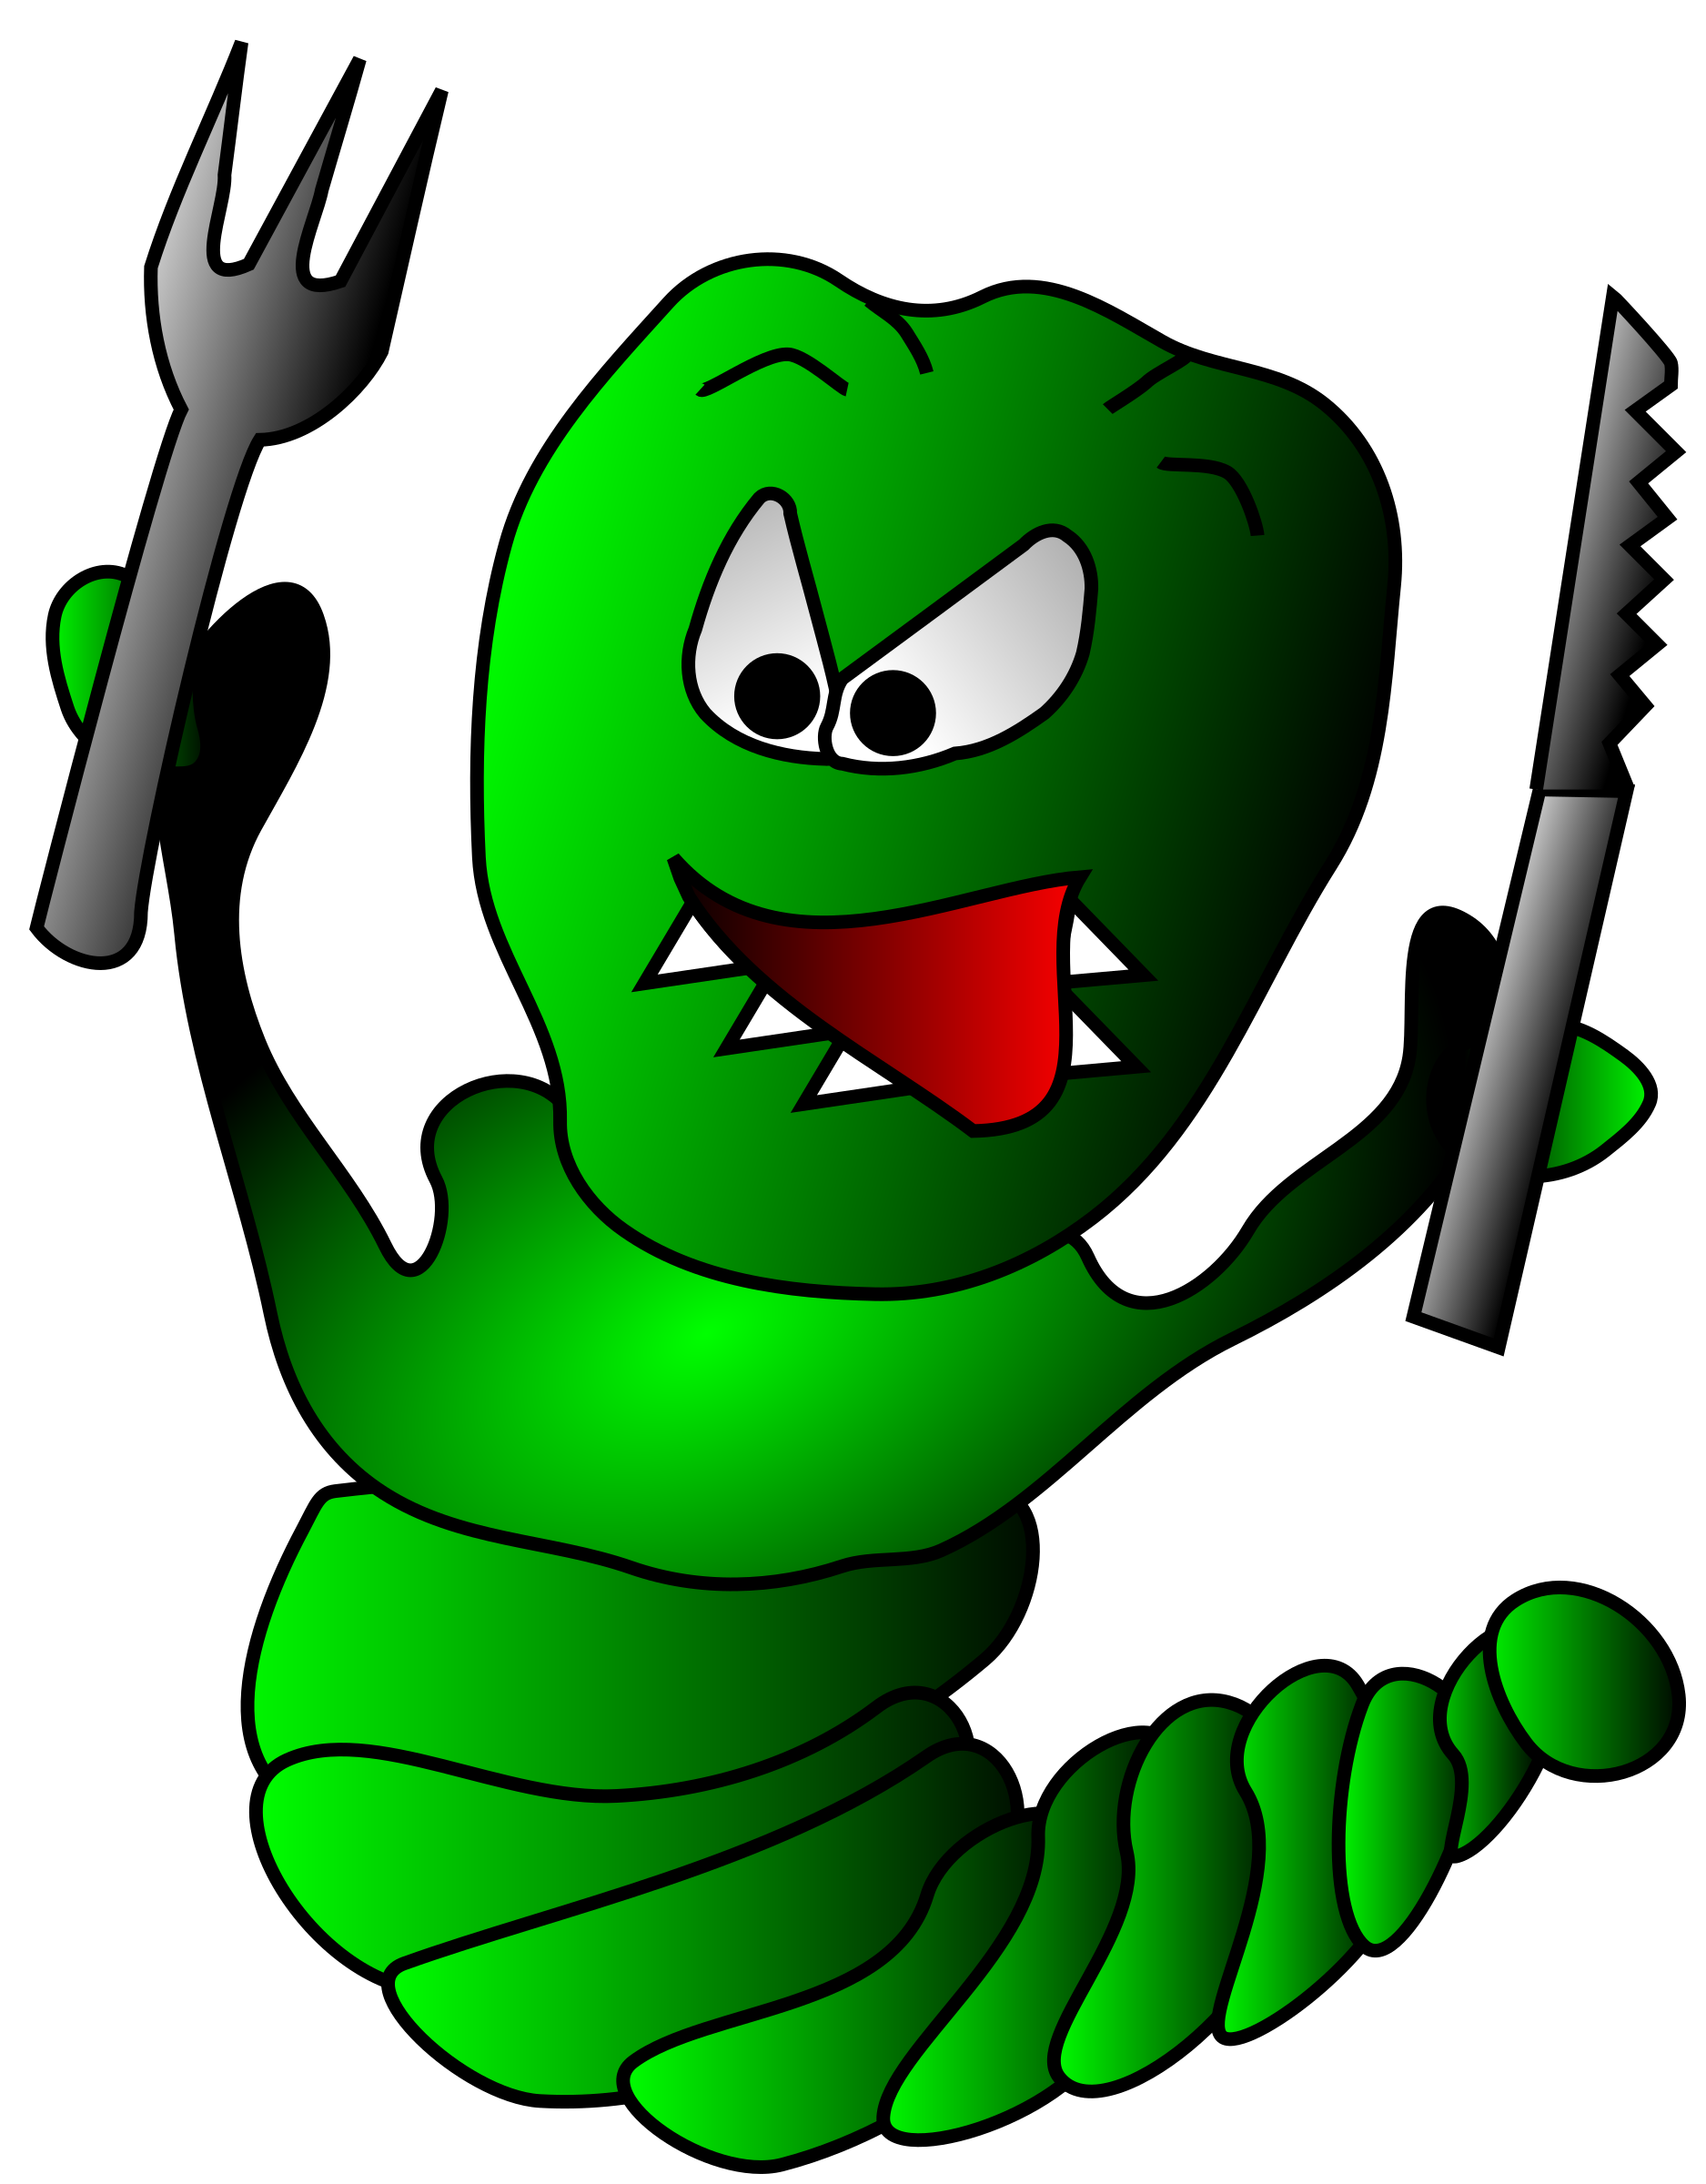 png freeuse stock Caterpillar big image png. Hungry clipart.